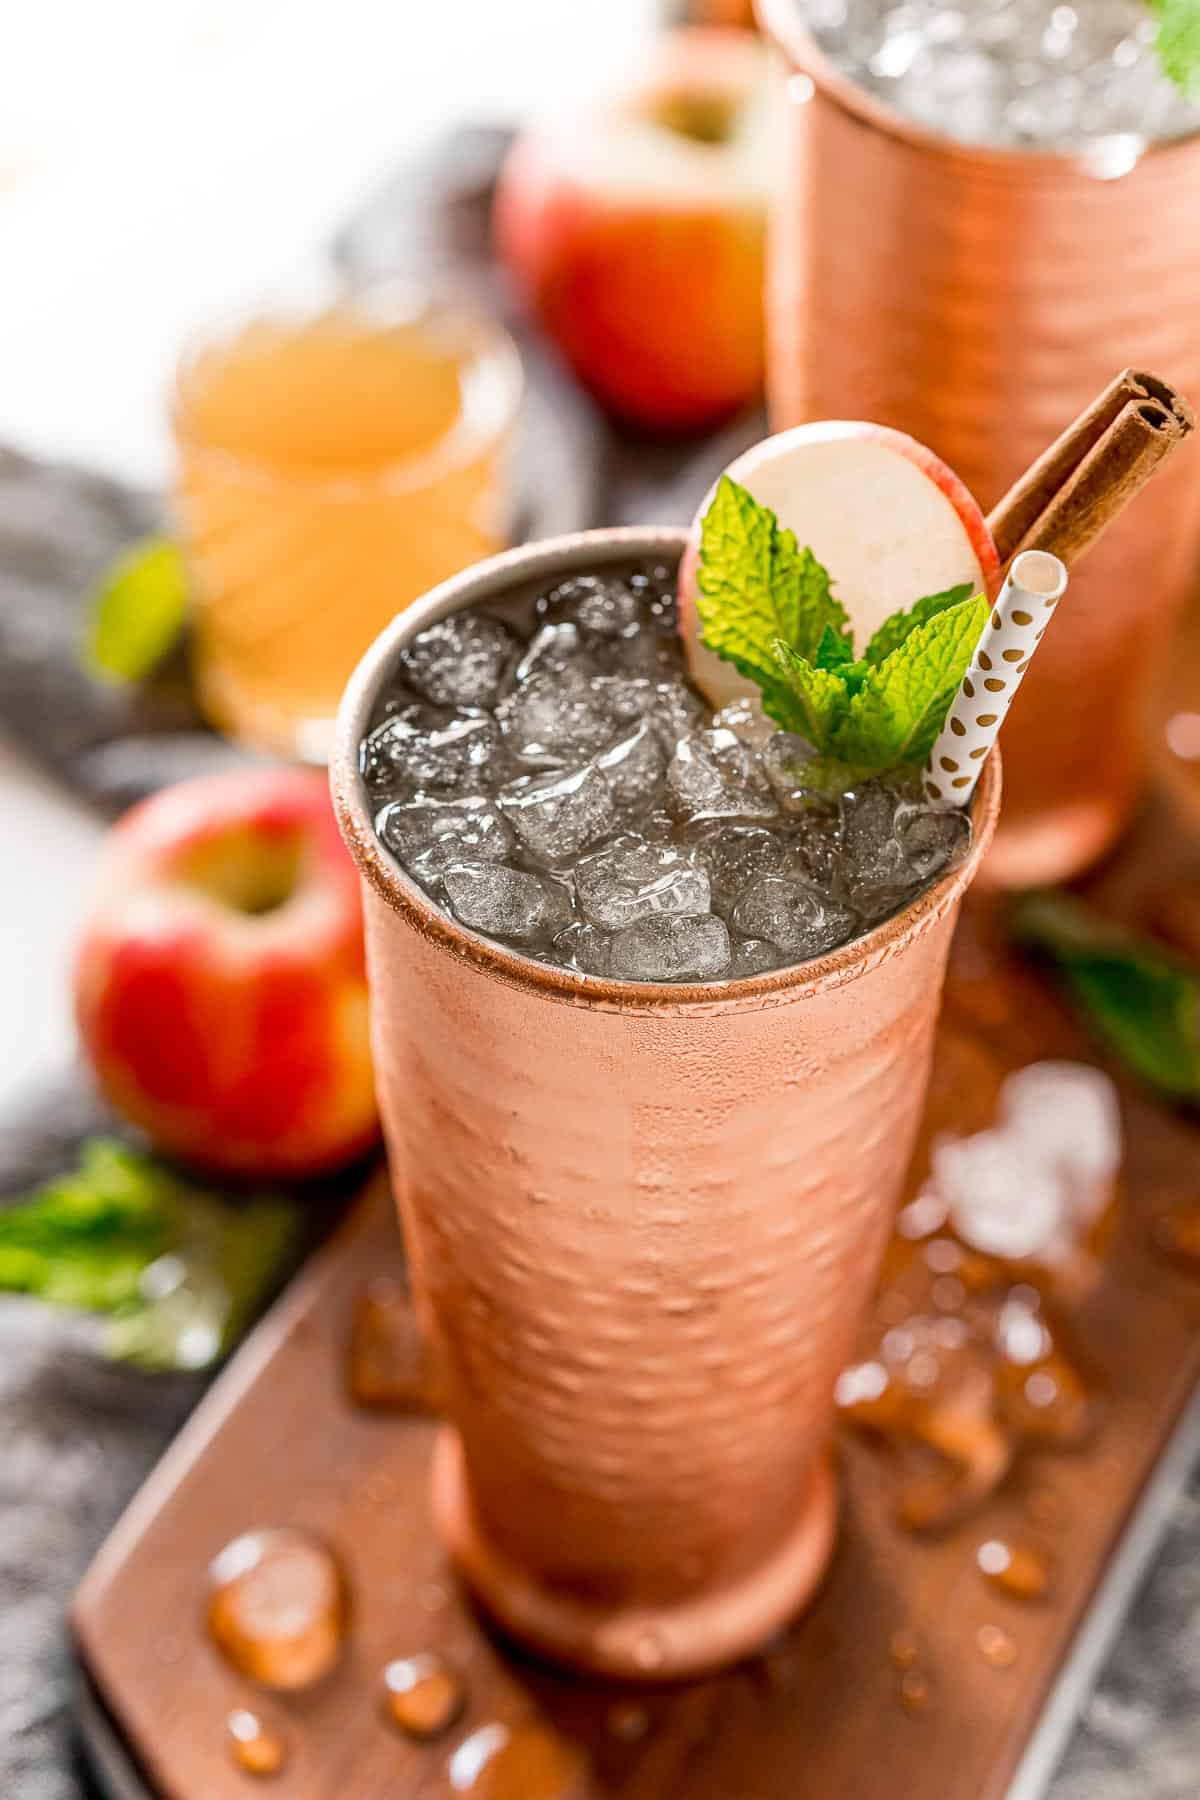 Apple cider moscow mule with nugget ice, garnished with apple, mint leaves, and a cinnamon stick.